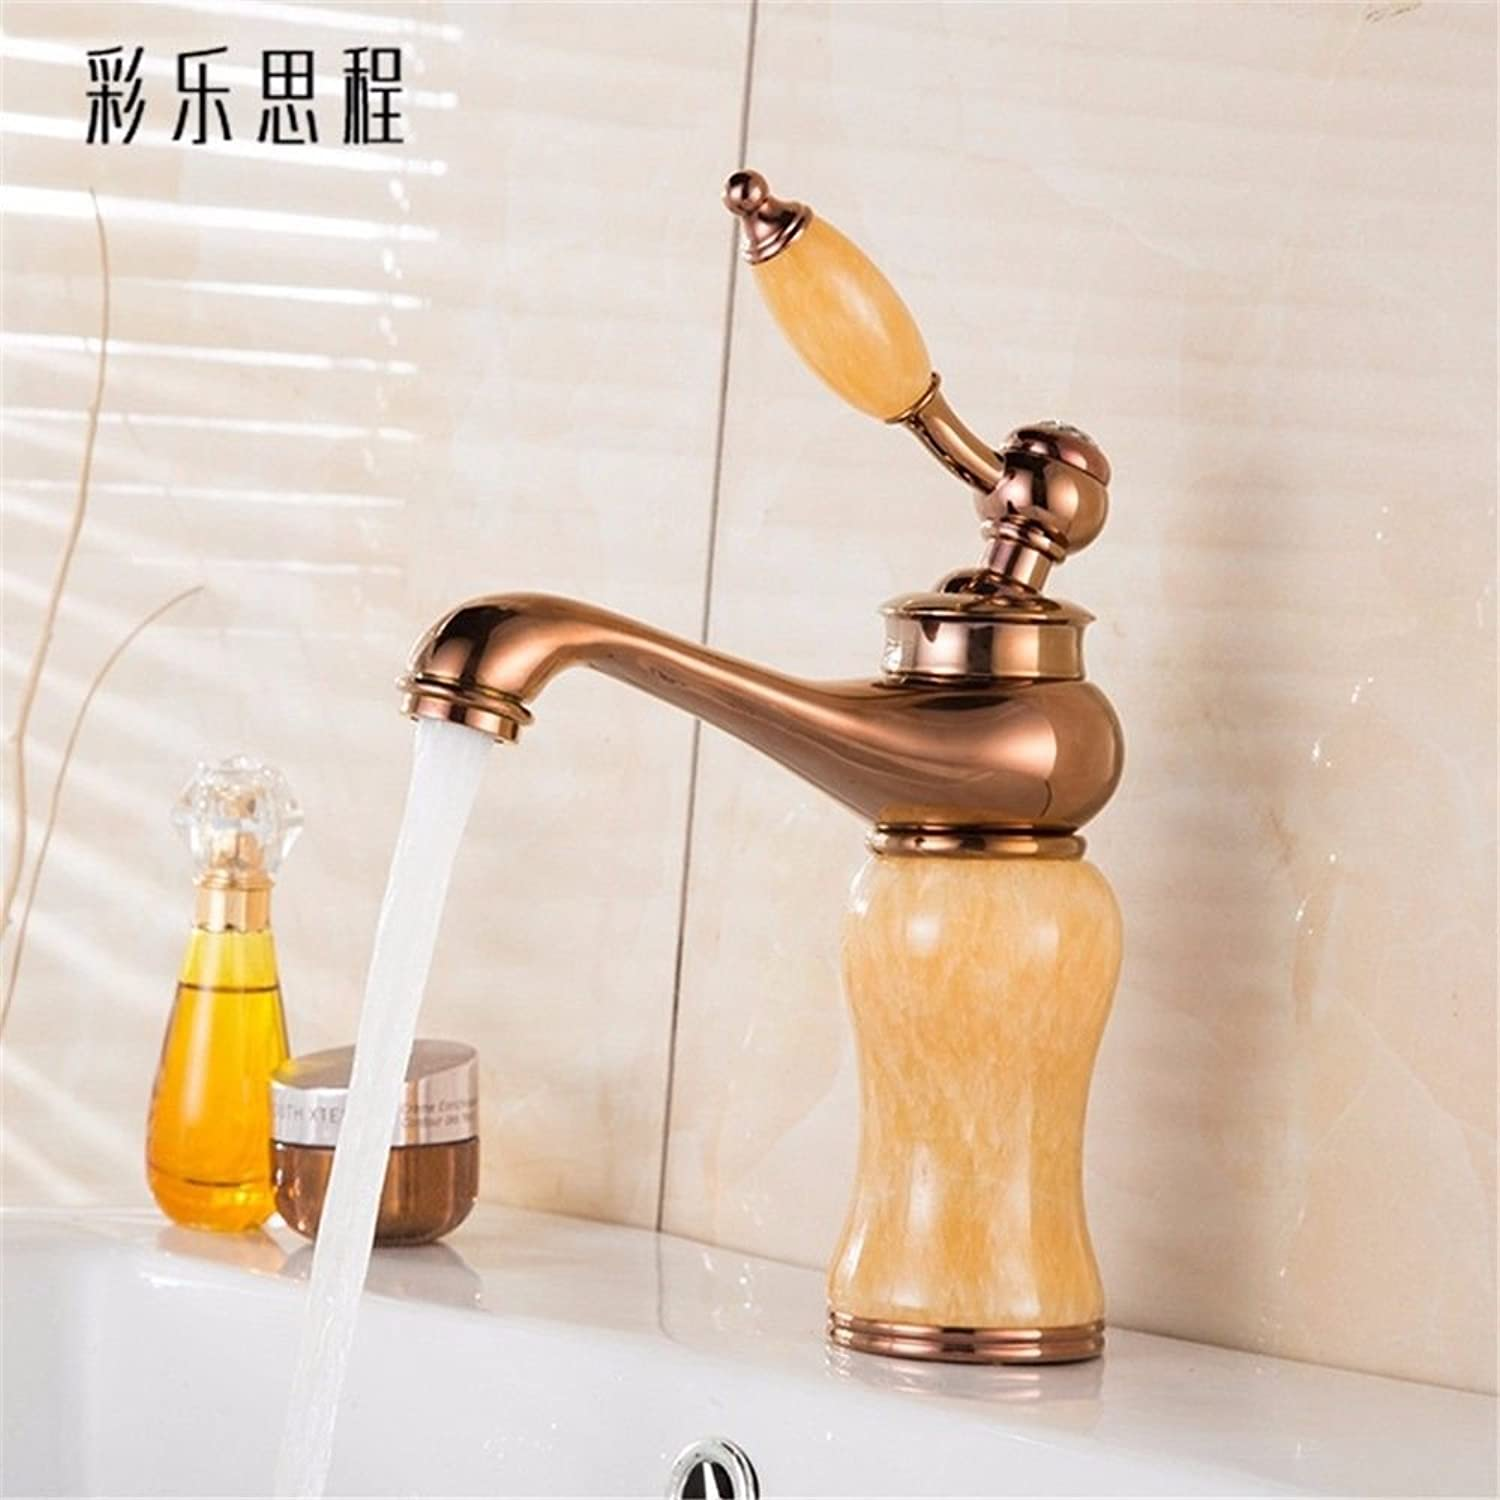 Commercial Single Lever Pull Down Kitchen Sink Faucet Brass Full Copper Marble Antique European Old Bathroom Hot and Cold Faucet Bathroom Single Hole Above Counter Basin Kitchen Bathroom Vanity